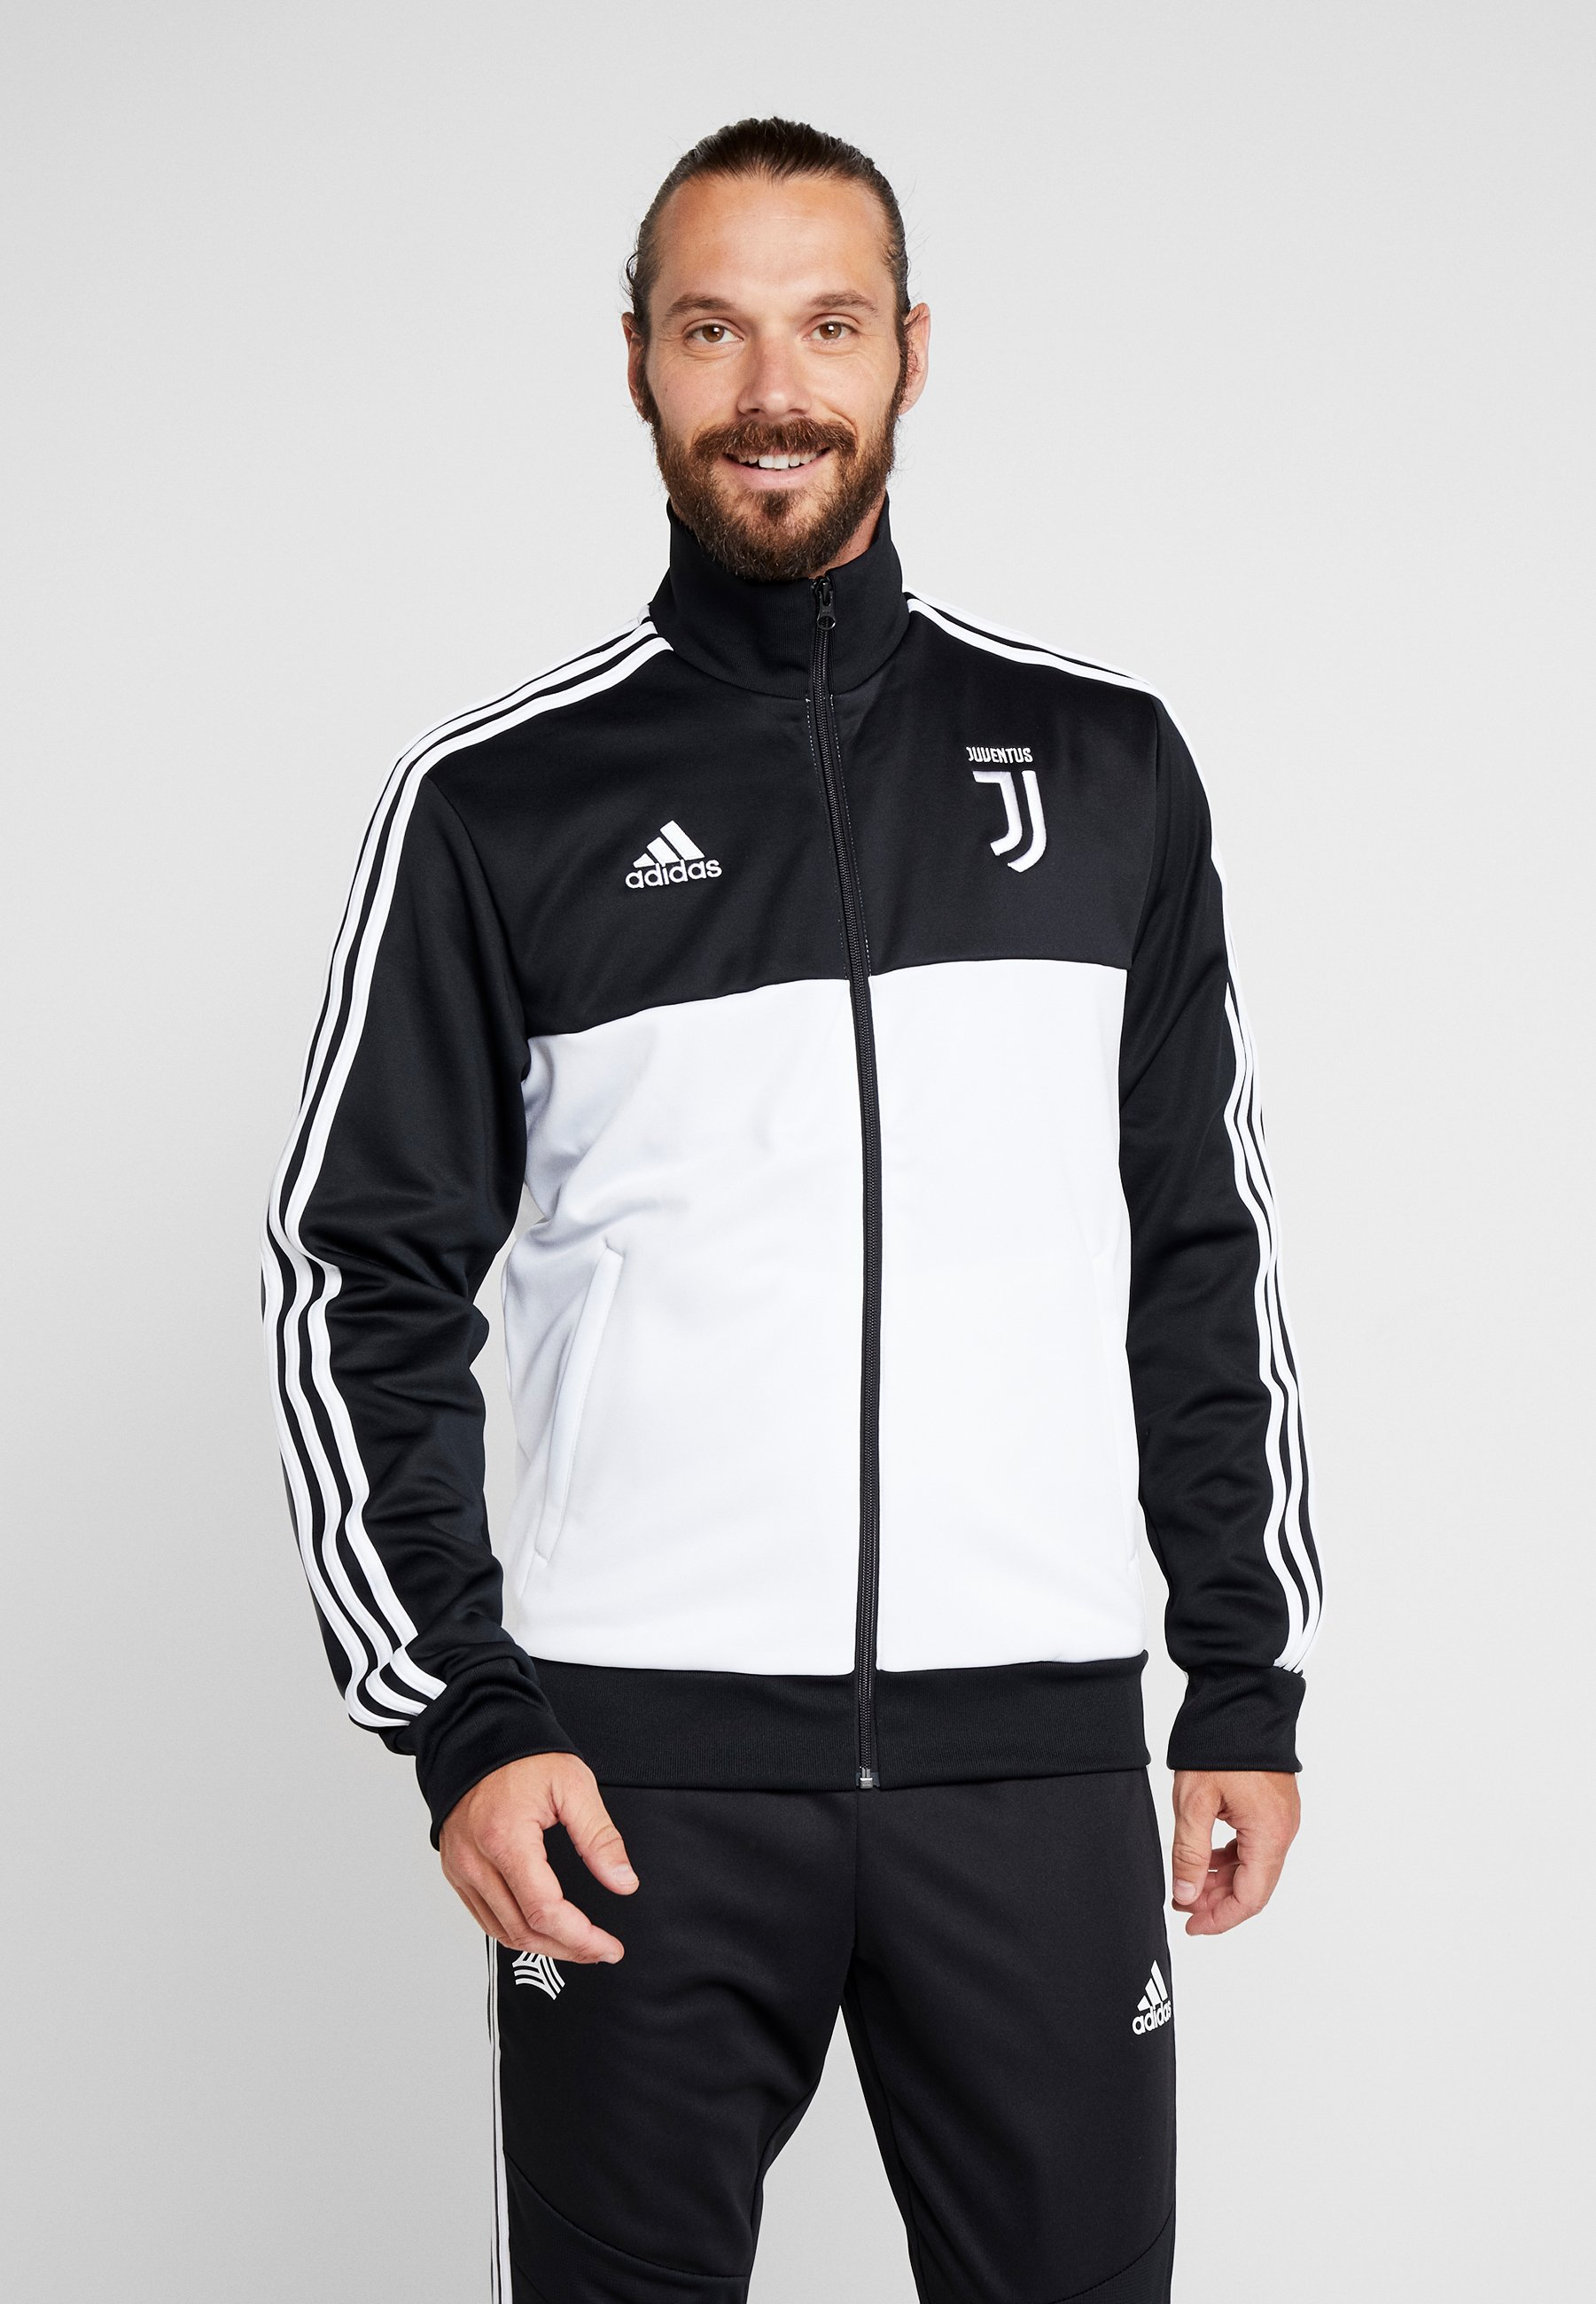 Black white Performance De Supporter TurinArticle Adidas Juventus wN8nvm0